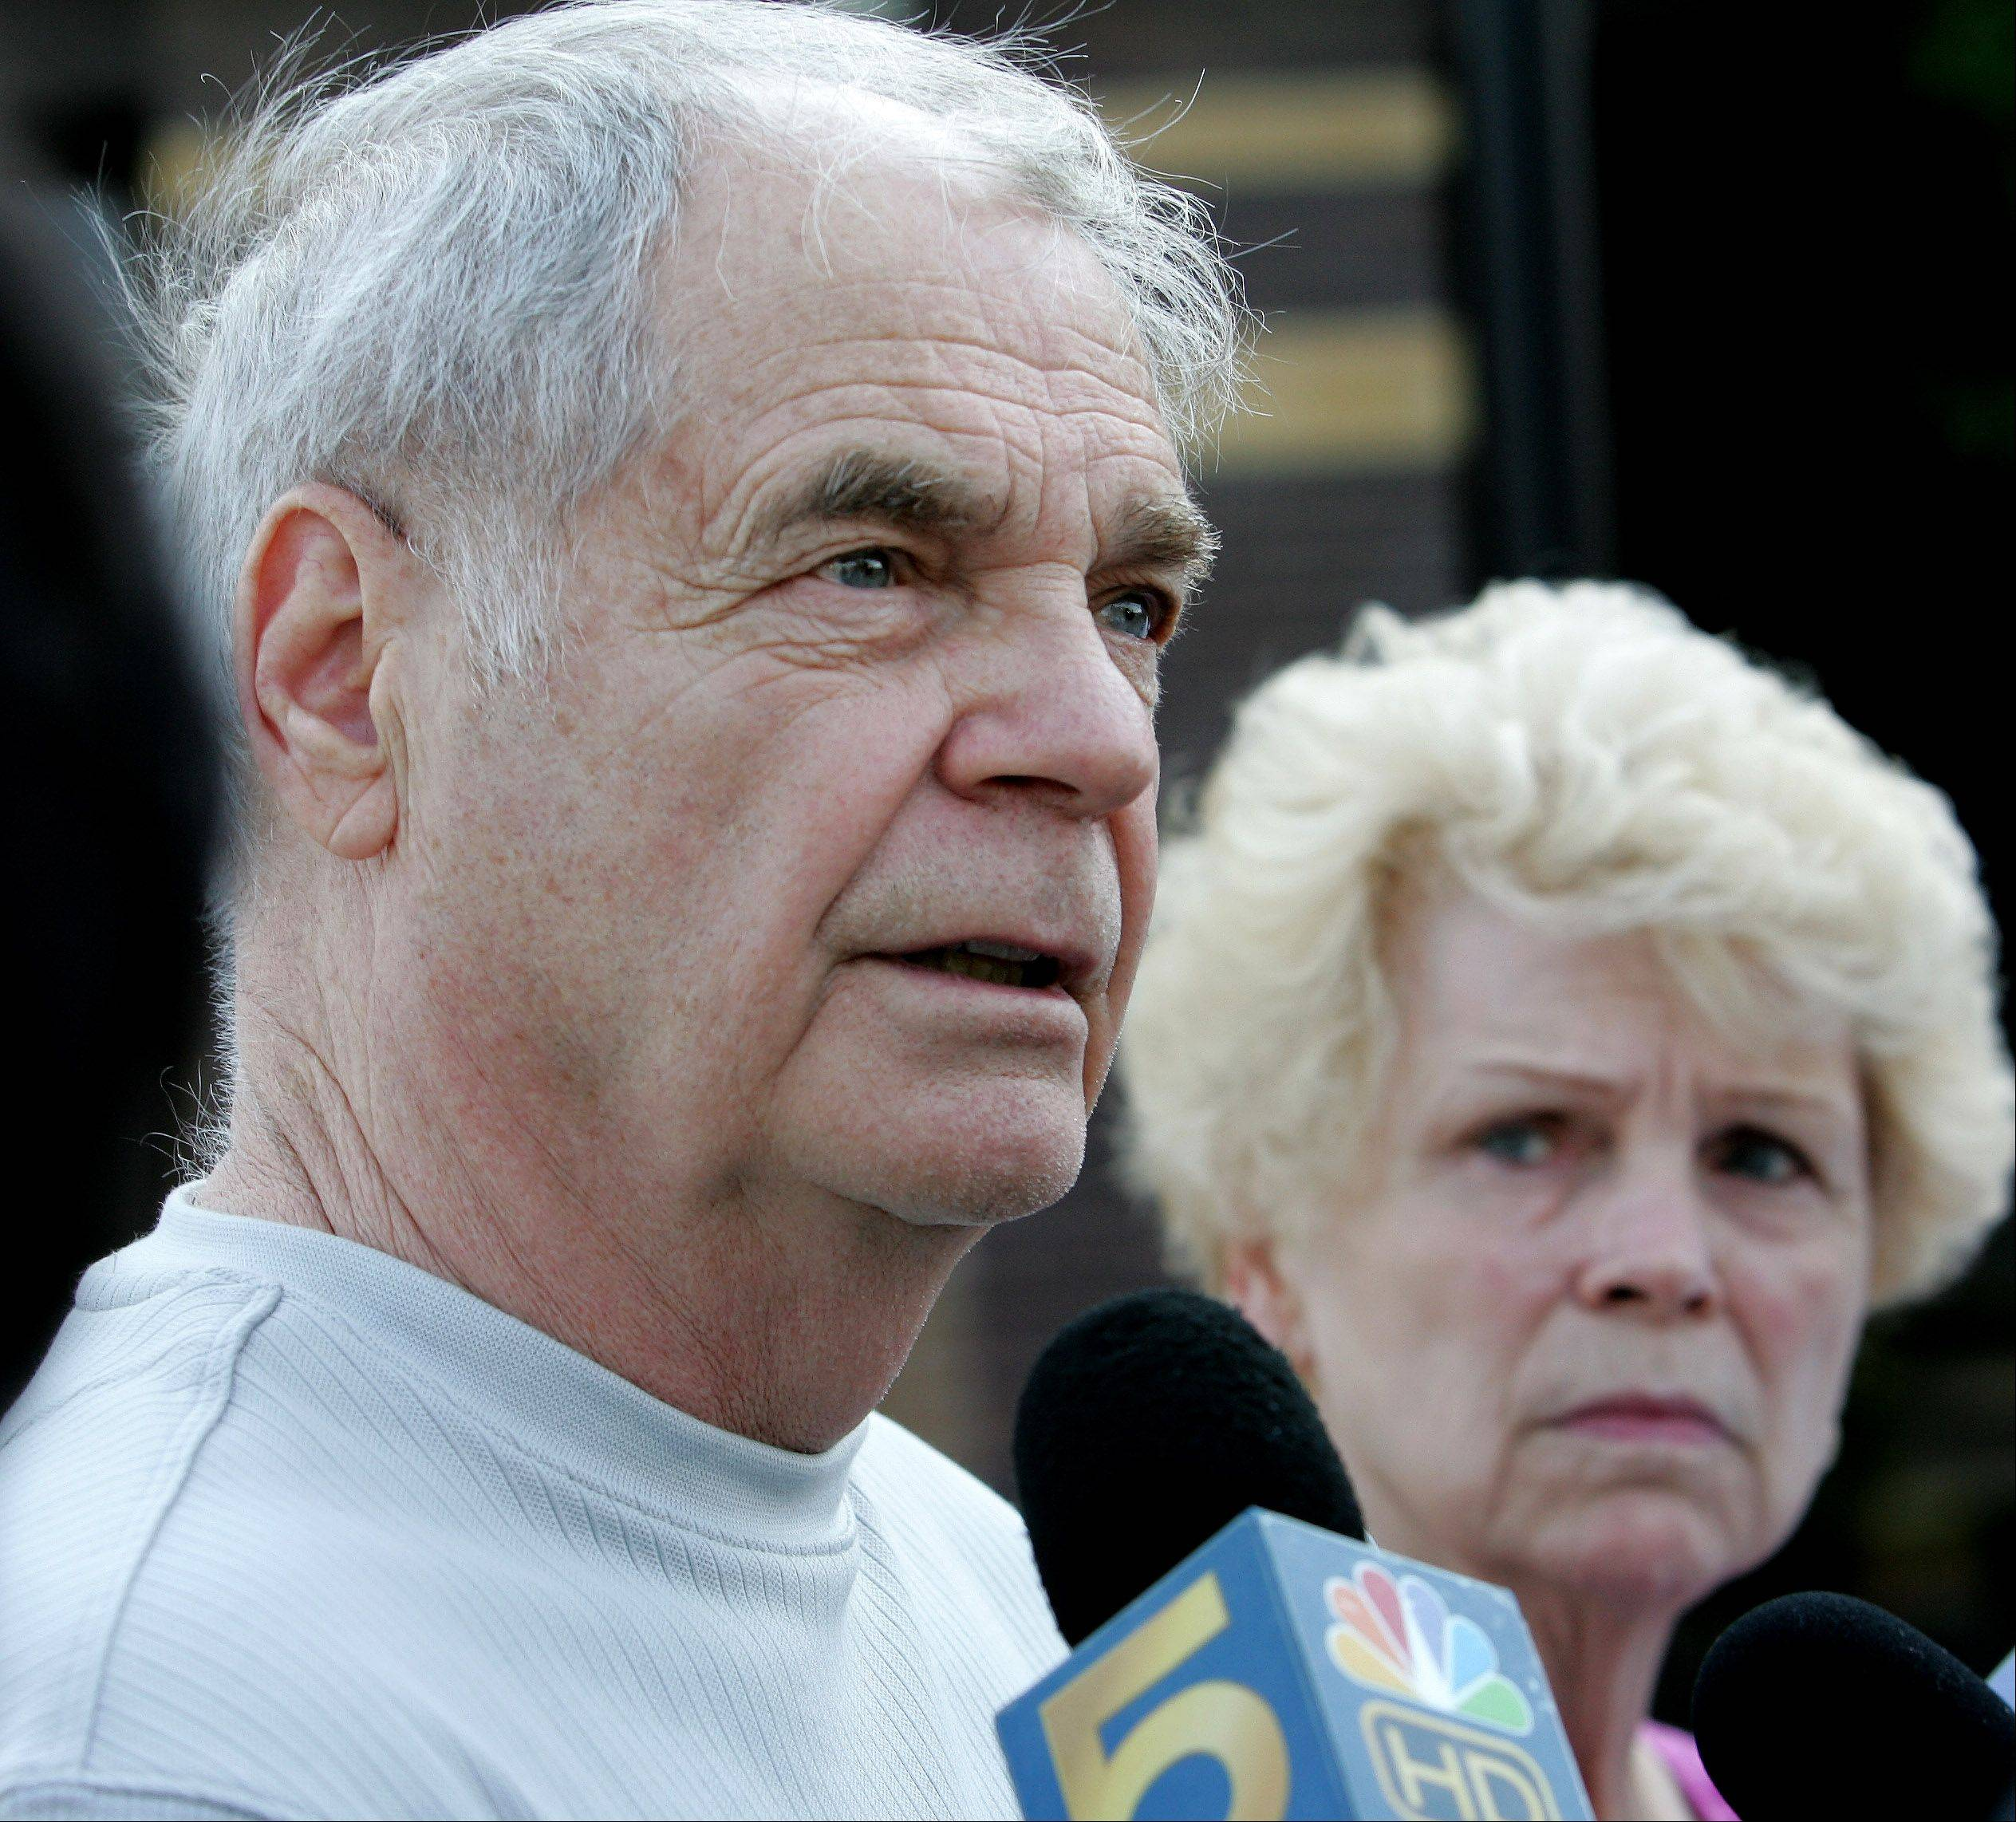 Wayne Wallar, with his wife, Fran, discusses the latest charges against Michael Whitney, convicted of the fatal stabbing Wayne's father, Cecil, in 1982.